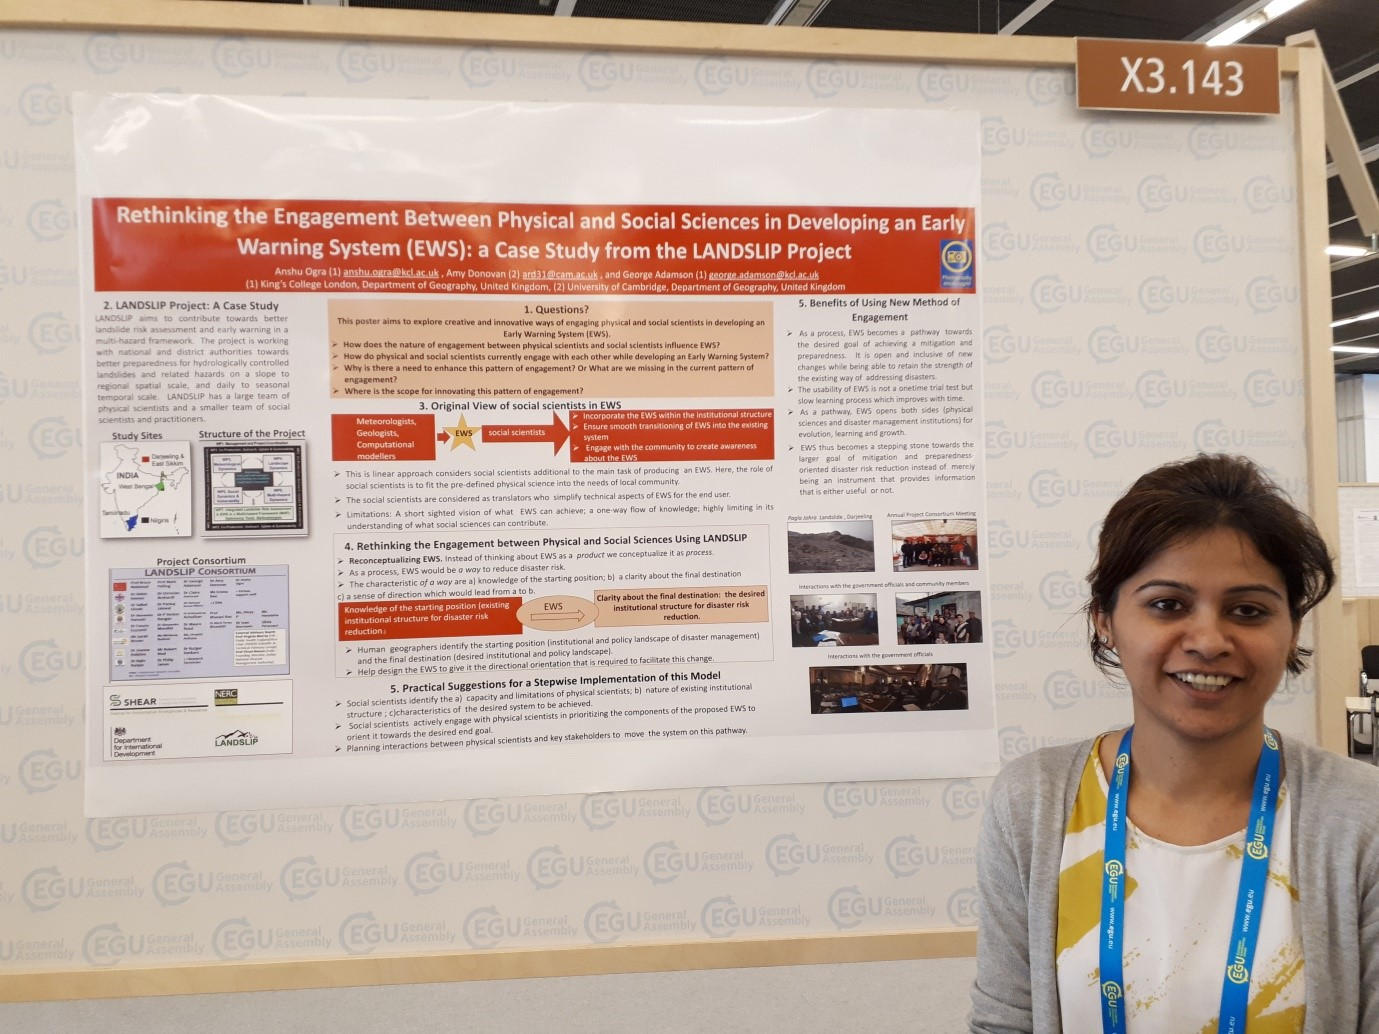 Anshu Ogra, from Kings College London, presents her poster on LANDSLIP's learning about interdisciplinary appraoches to developing a landslide early warning system